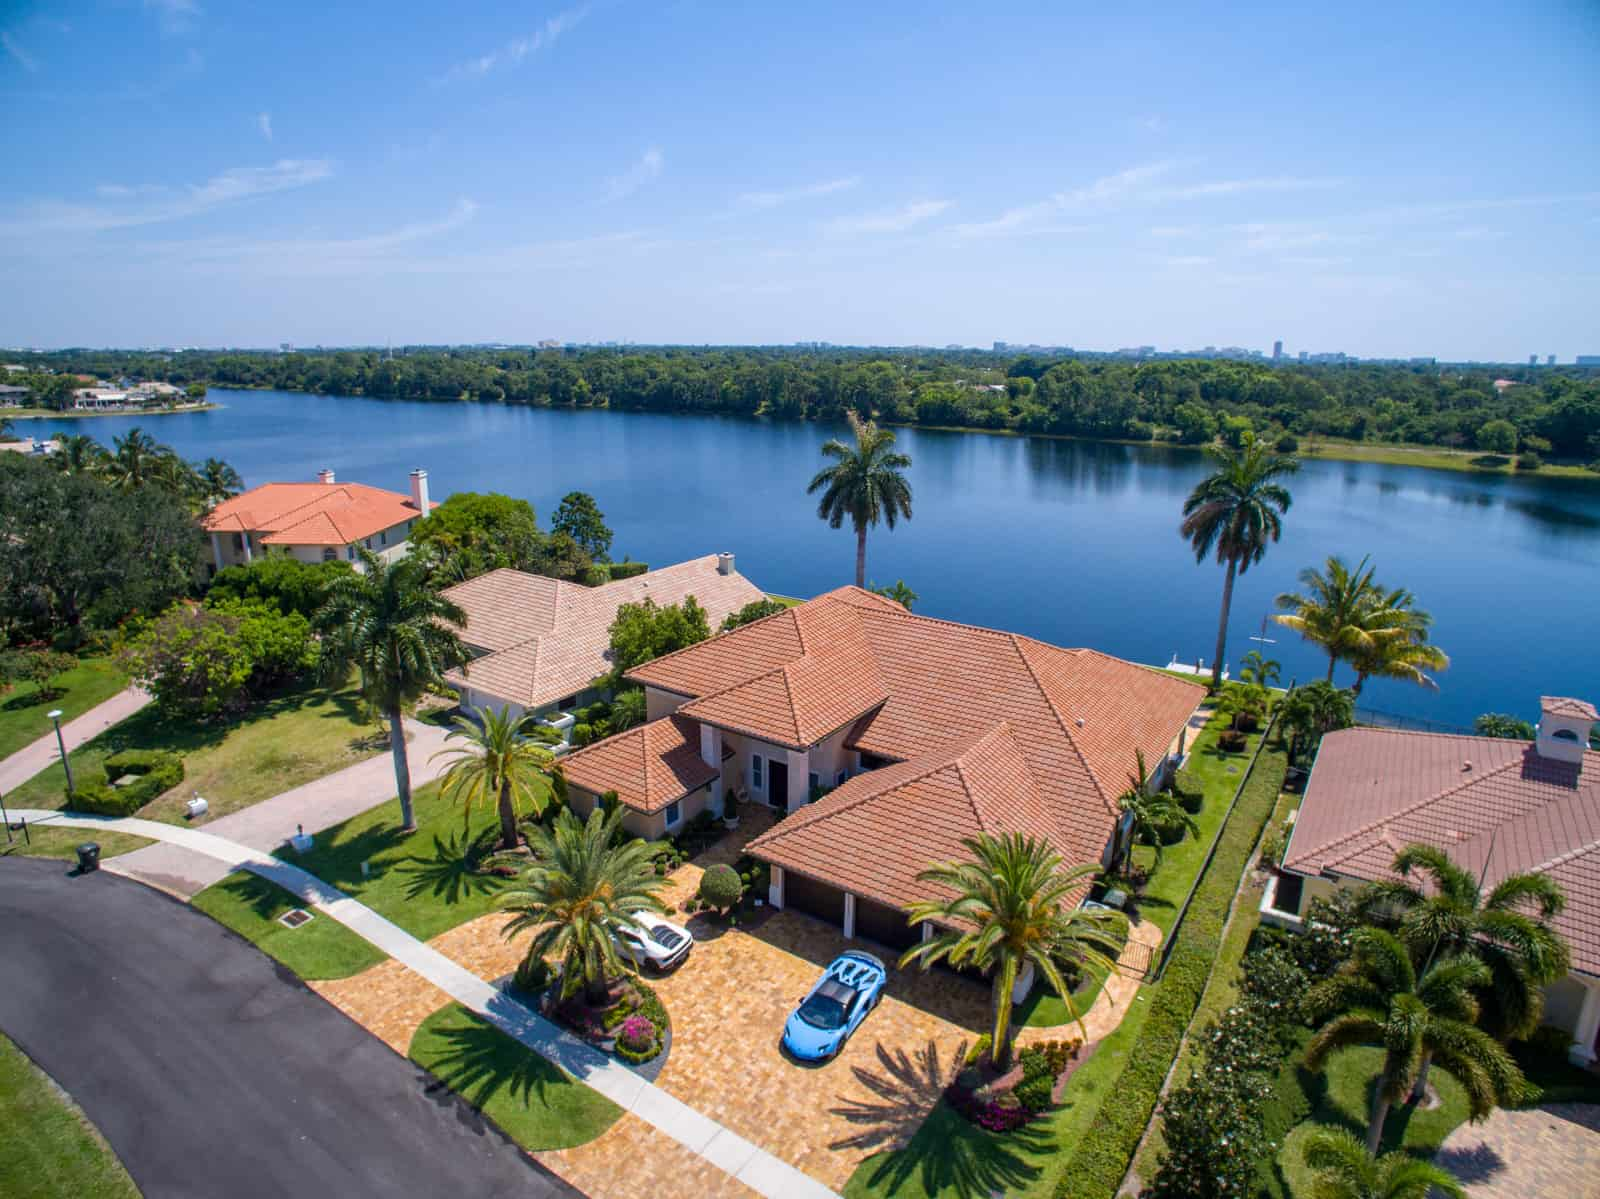 house in Boca Raton, FL, with lake in background and two Ferrari's parked in the driveway